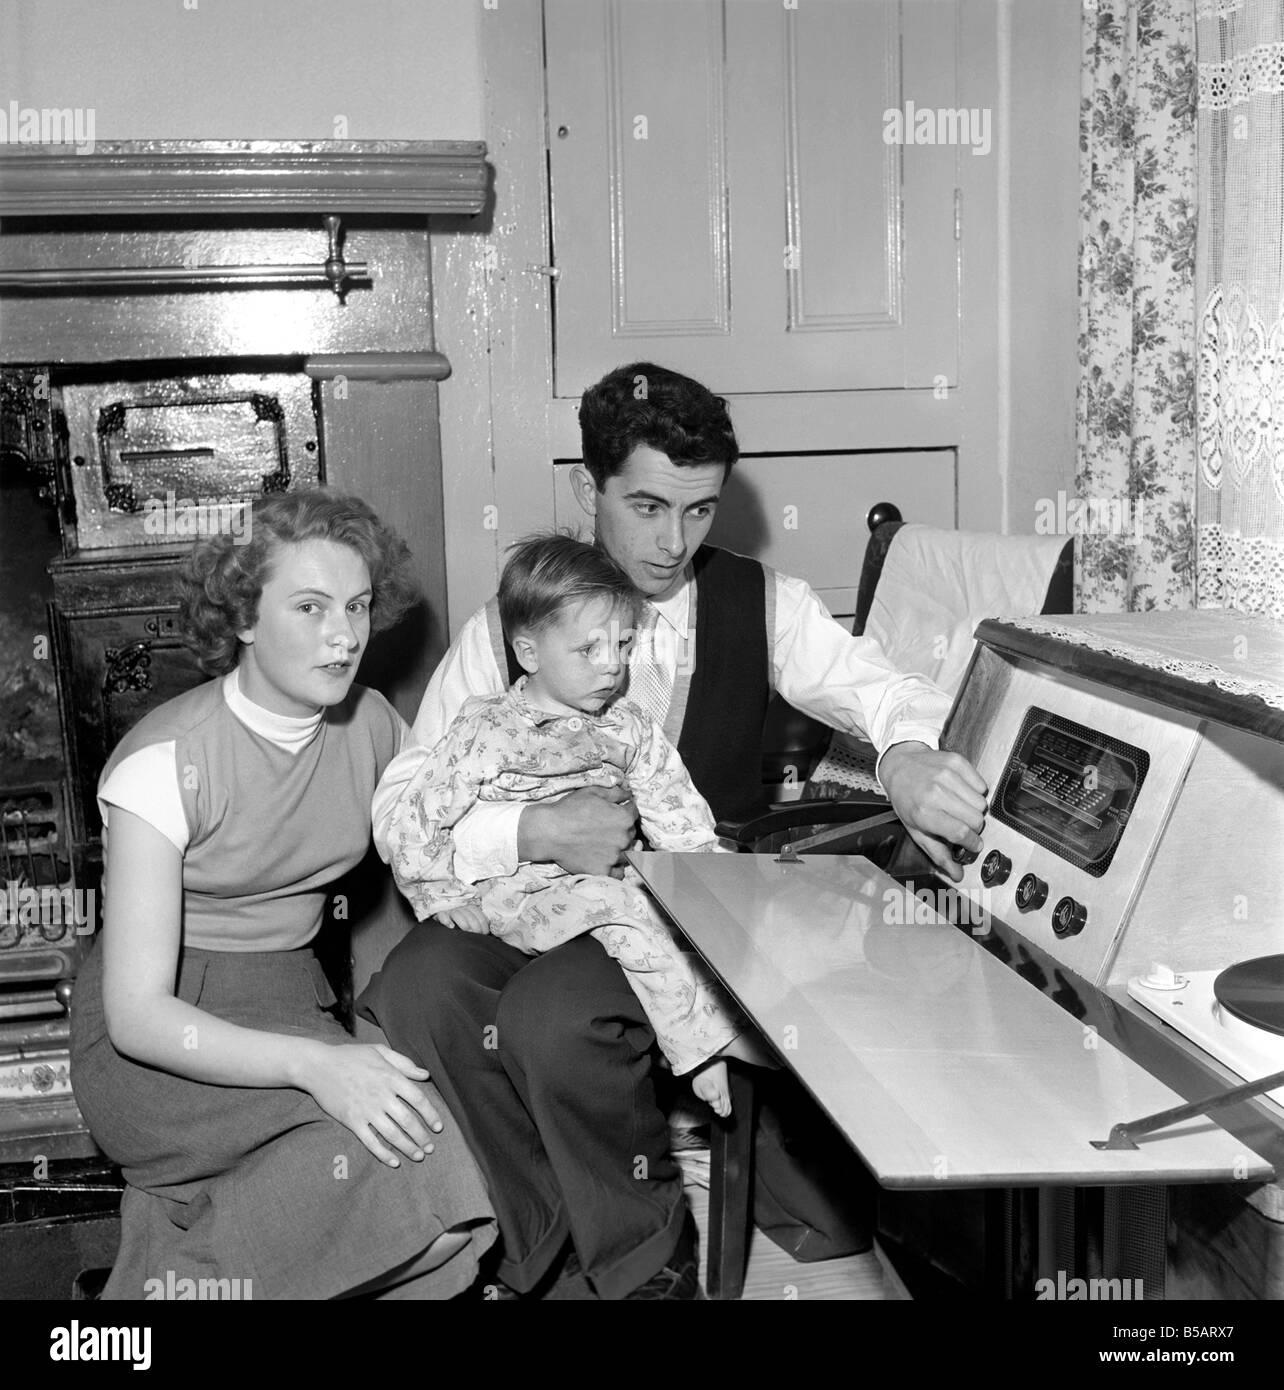 Family life: Mr. and Mrs. Hull with their son. 1954 A160-009 - Stock Image